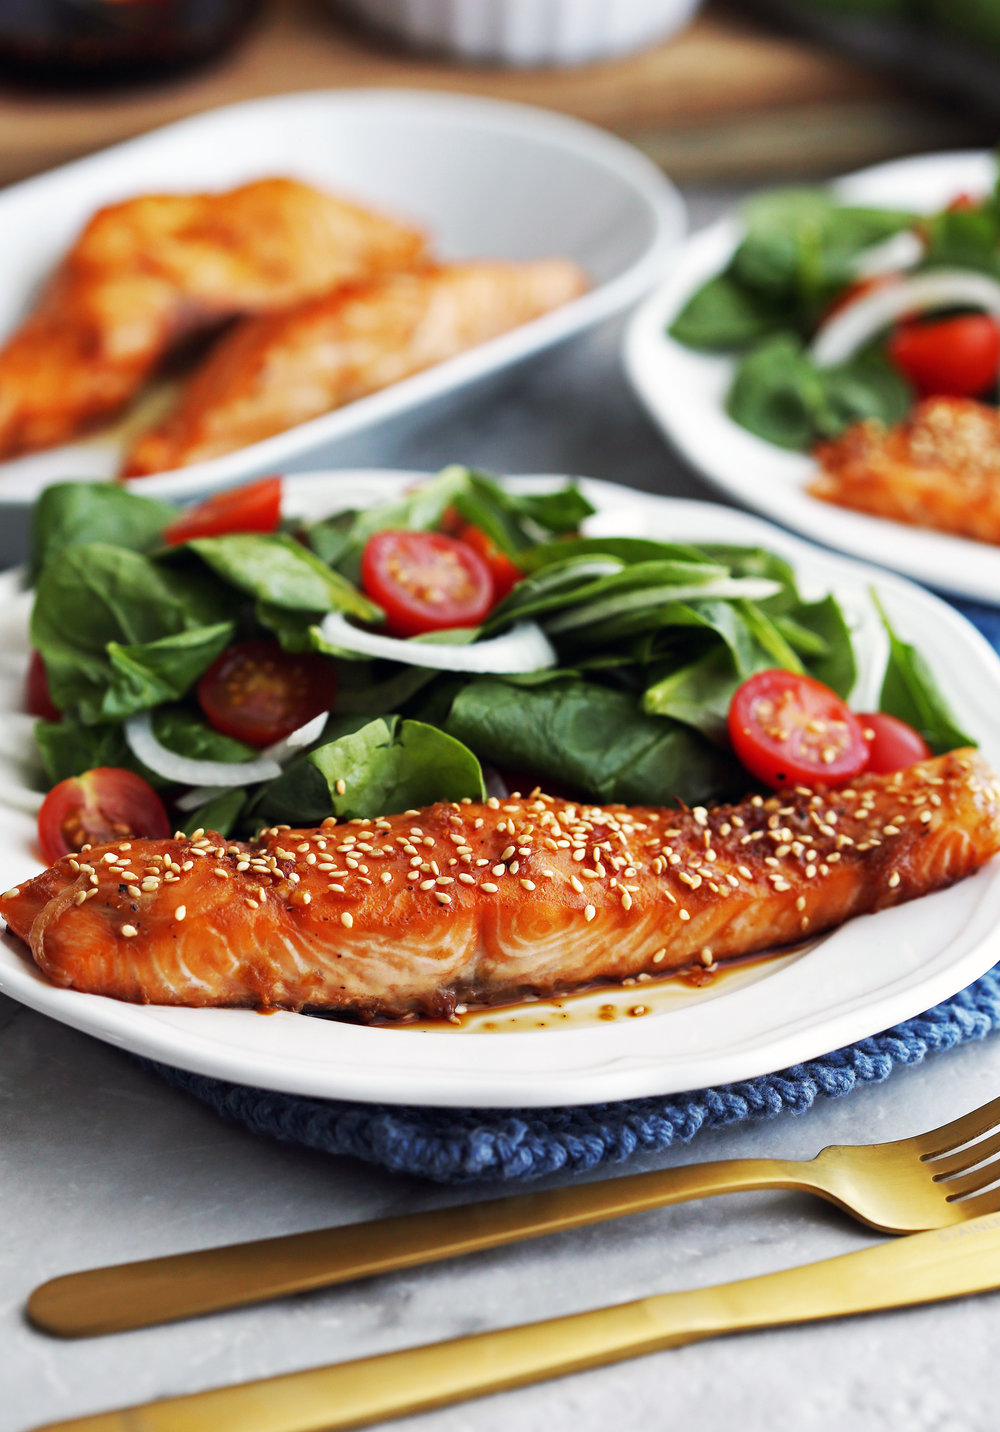 Maple-Soy Baked Salmon topped with sesame seeds with green spinach salad on a white plate.